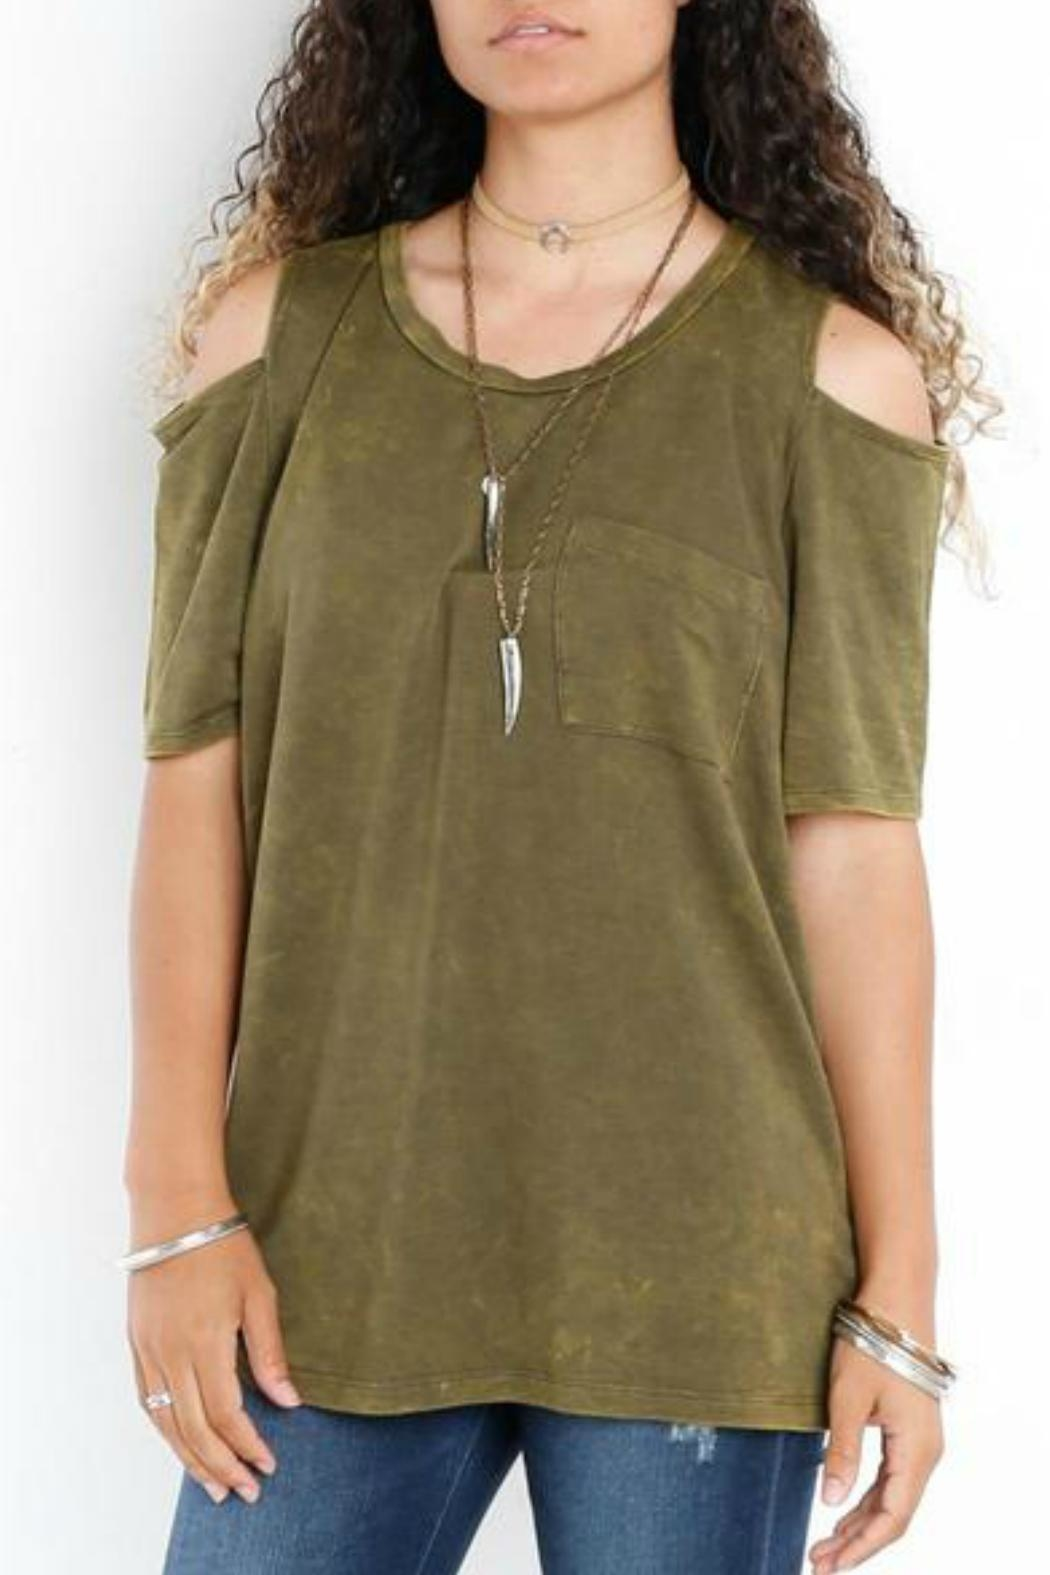 Libby Story Washed Open-Shoulder Tee - Main Image